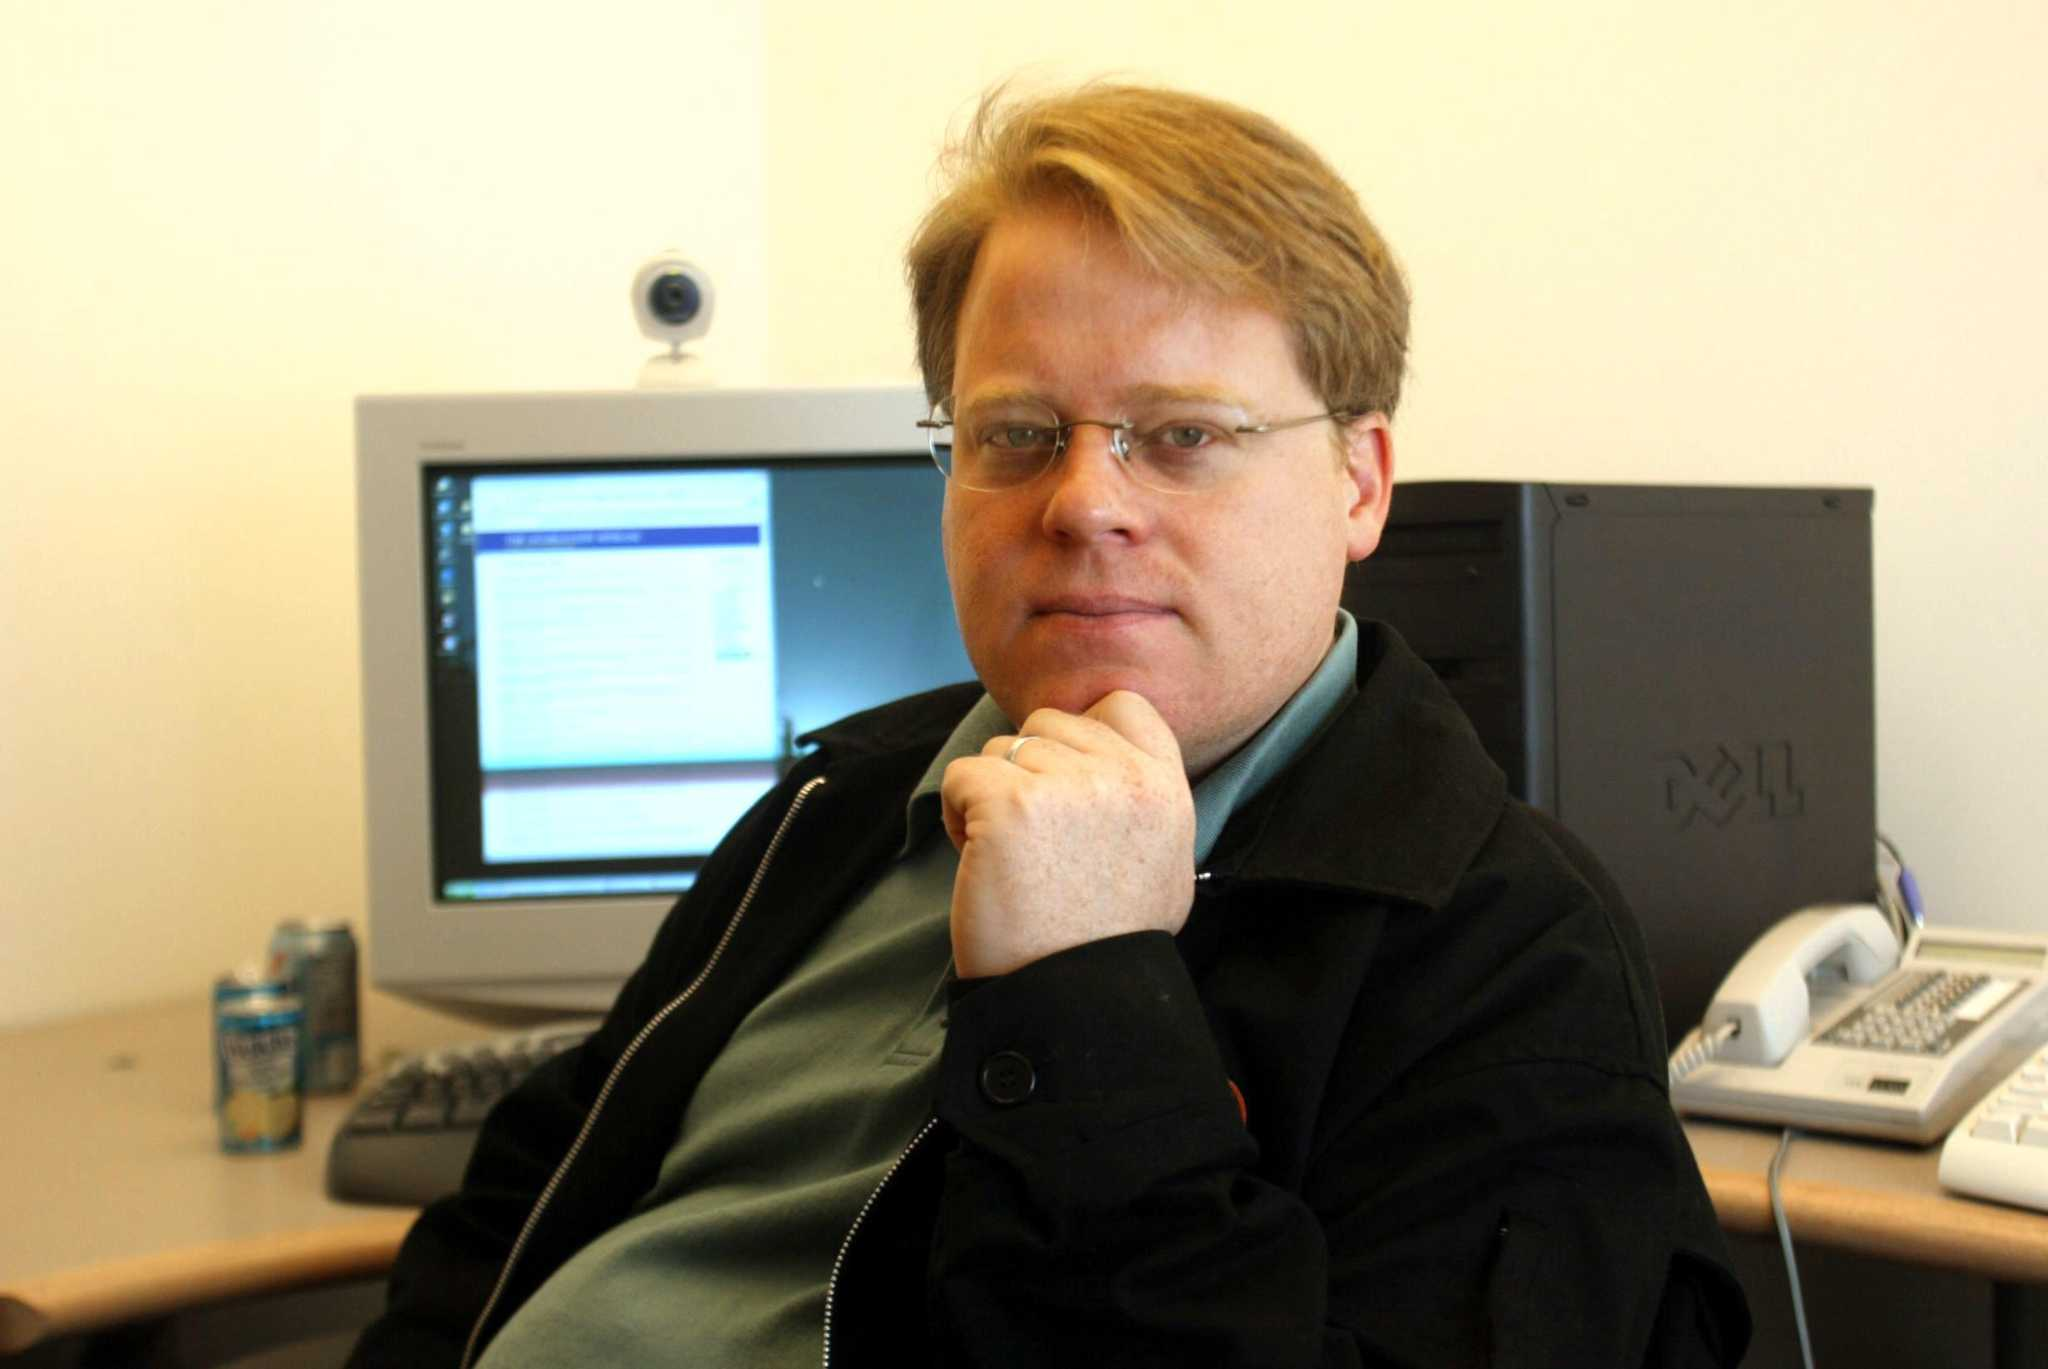 Former Rackspace employee and prominent techie Scoble denies